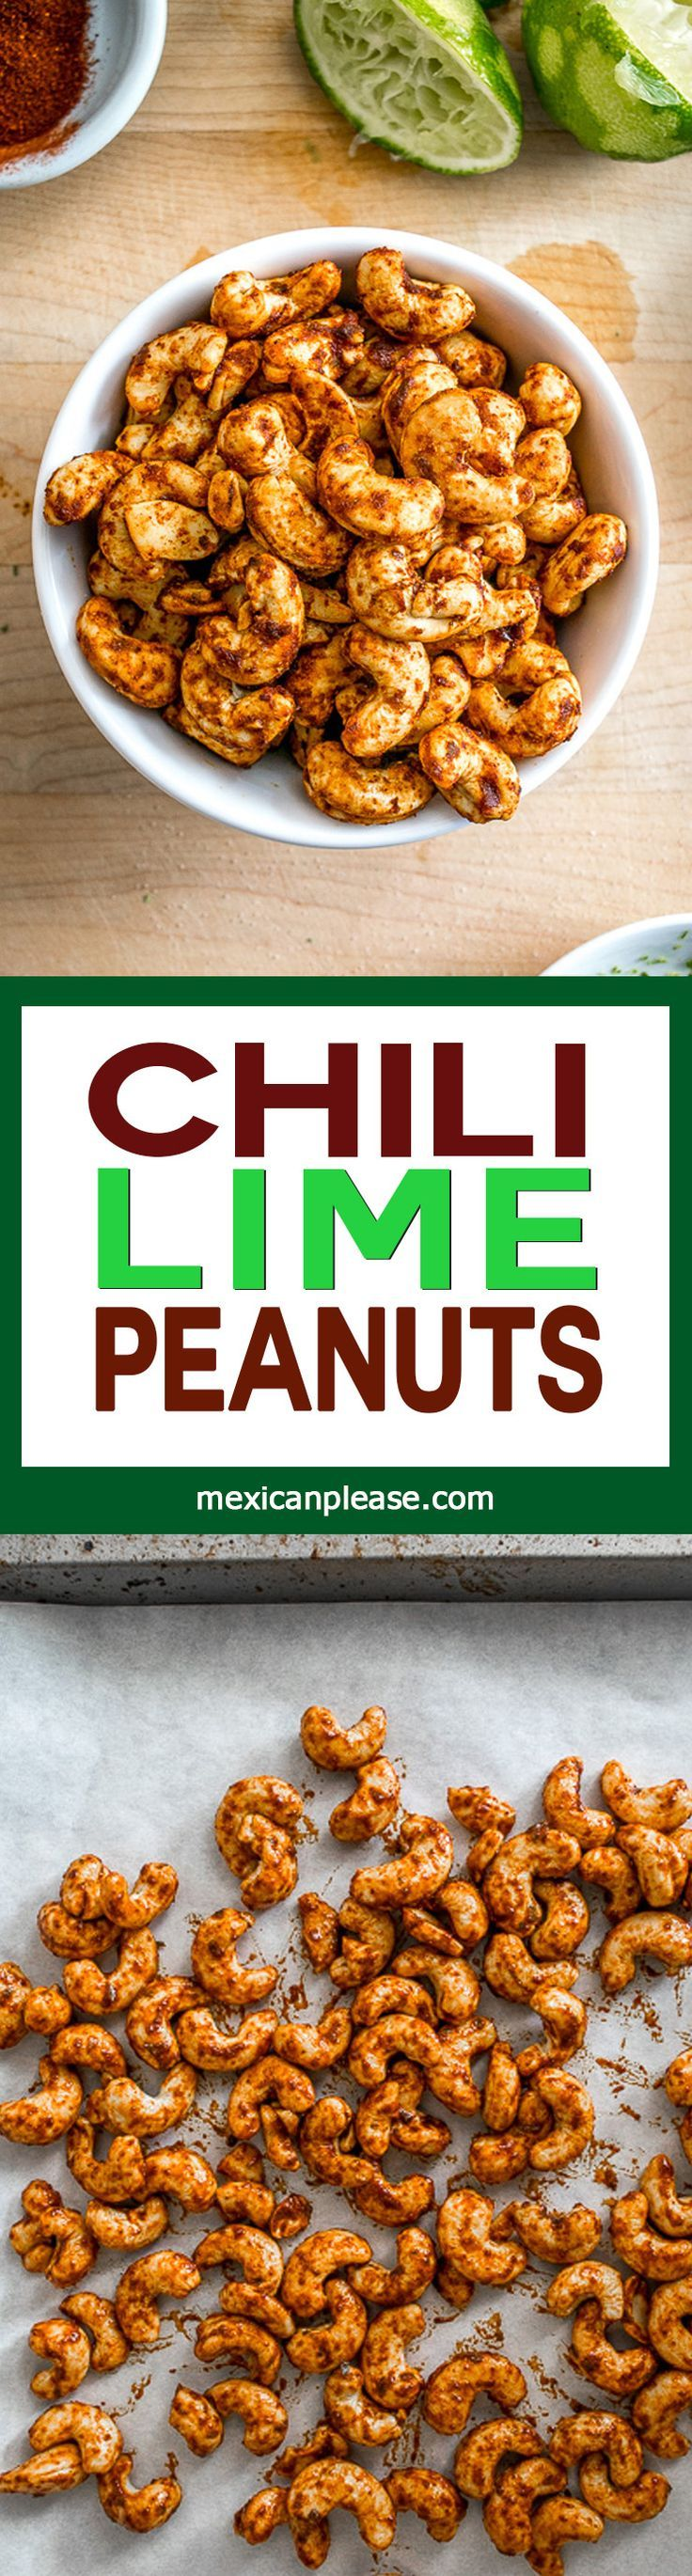 Chili-Lime Peanuts -- Cacahuates Enchilados | Recipe | Cayenne Peppers ...